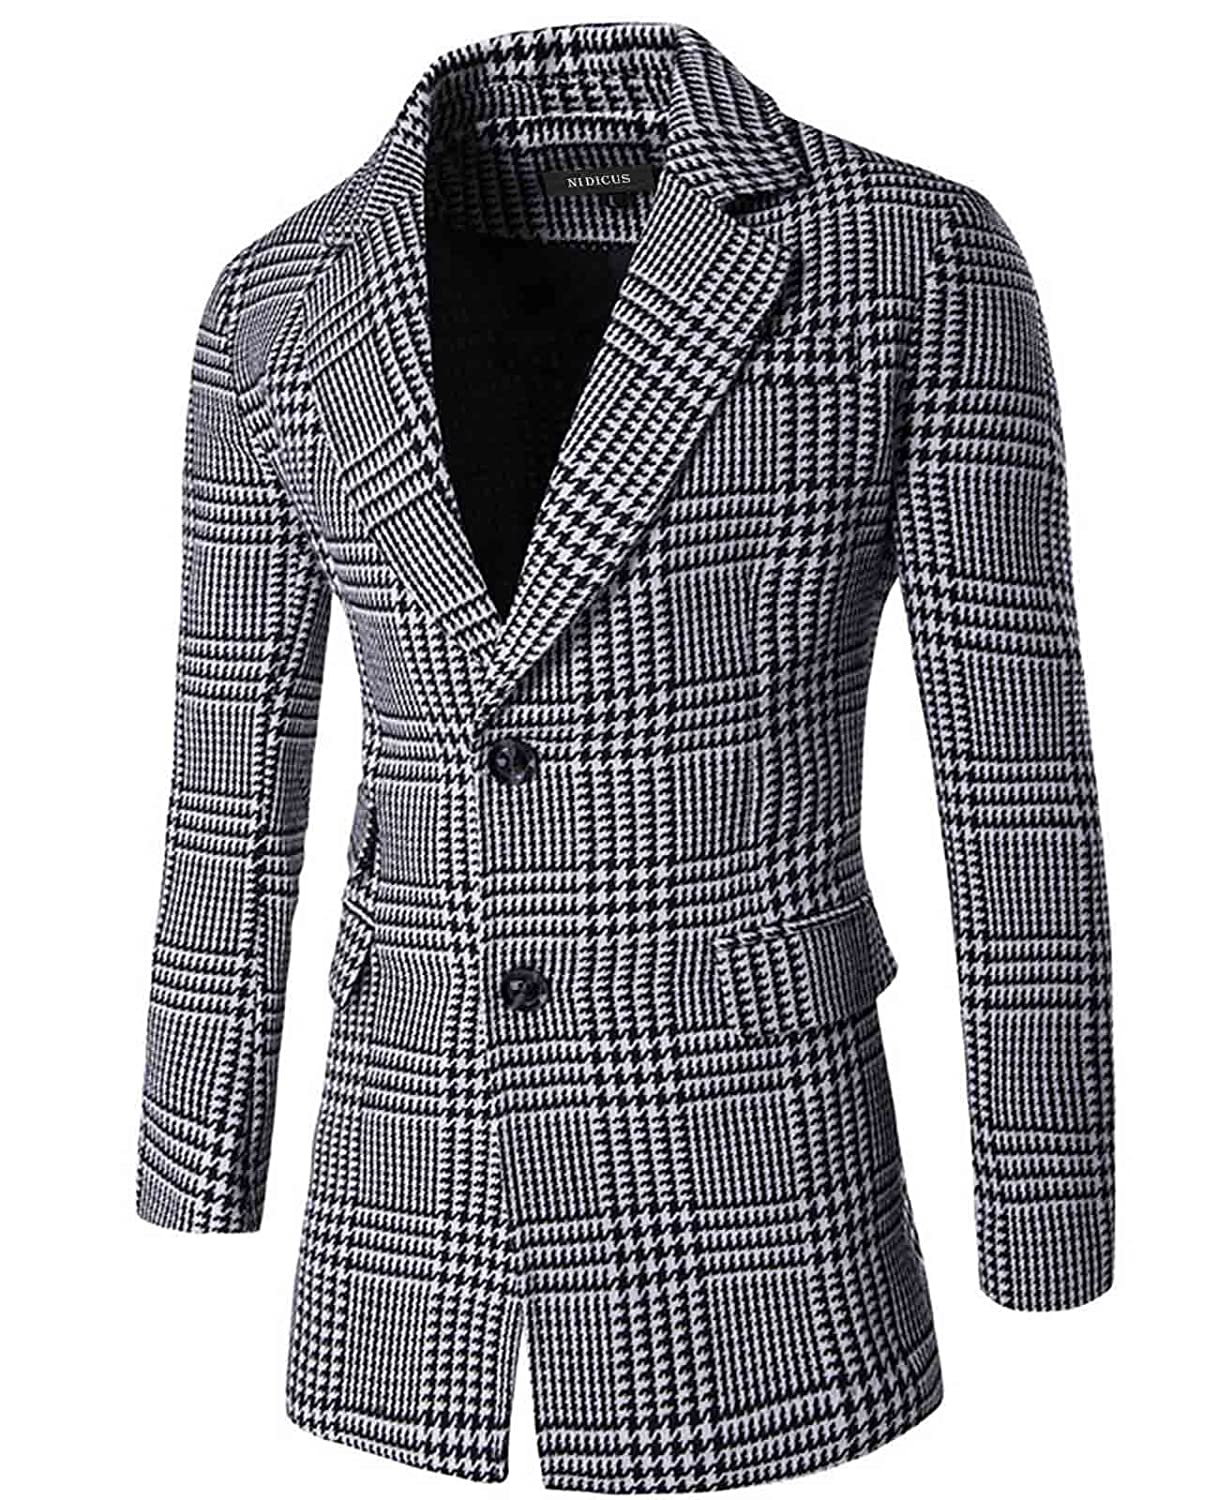 Nidicus Mens Retro Plaid Houndstooth Check 2-Button